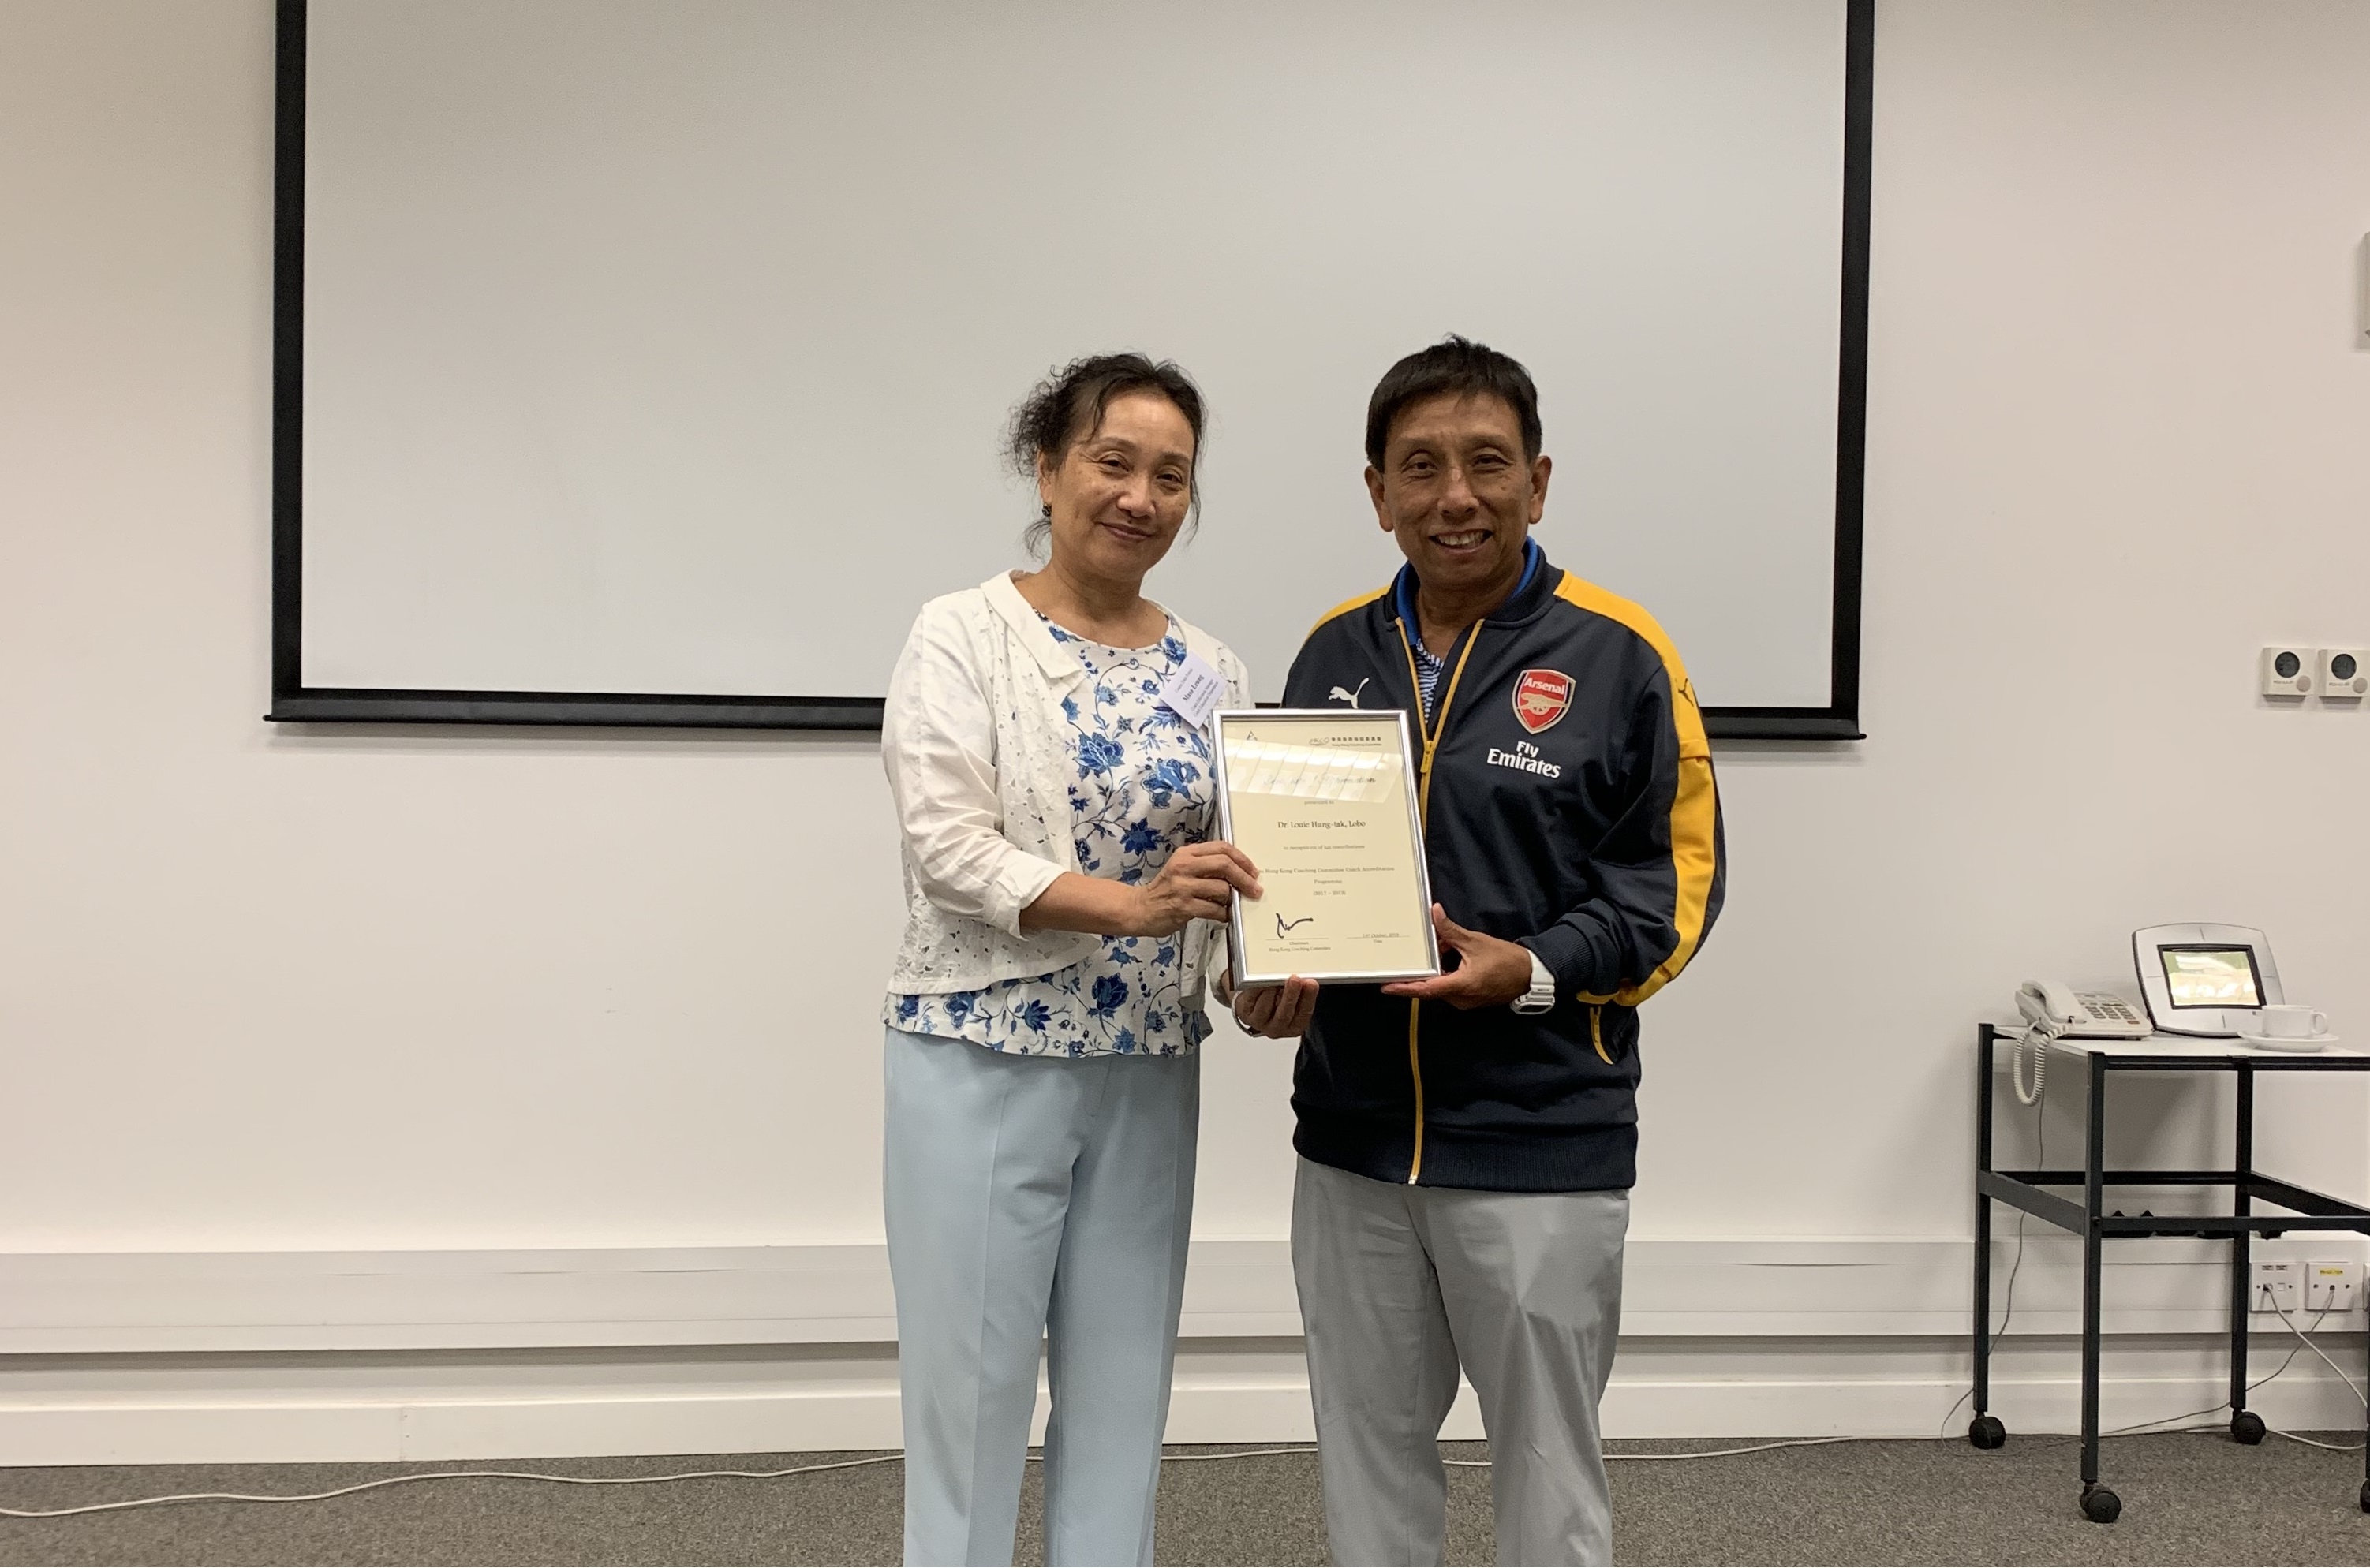 Dr. Masa Leung, Coach Education Manager, presented Certificate of Appreciation to lecturers one by one to show appreciation